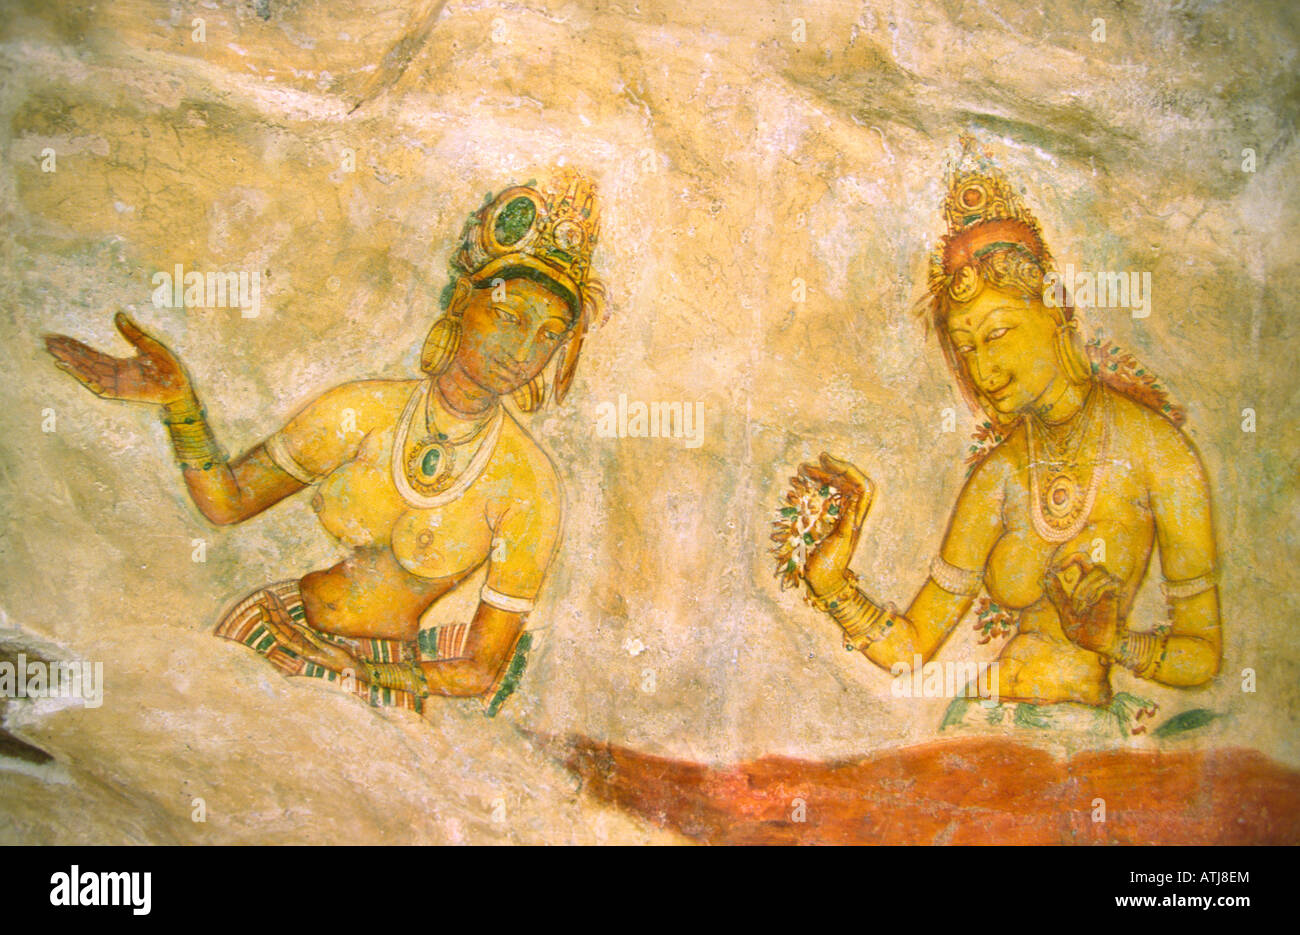 Sri Lanka Sigiriya rock fortress Maidens tempera fresco - Stock Image